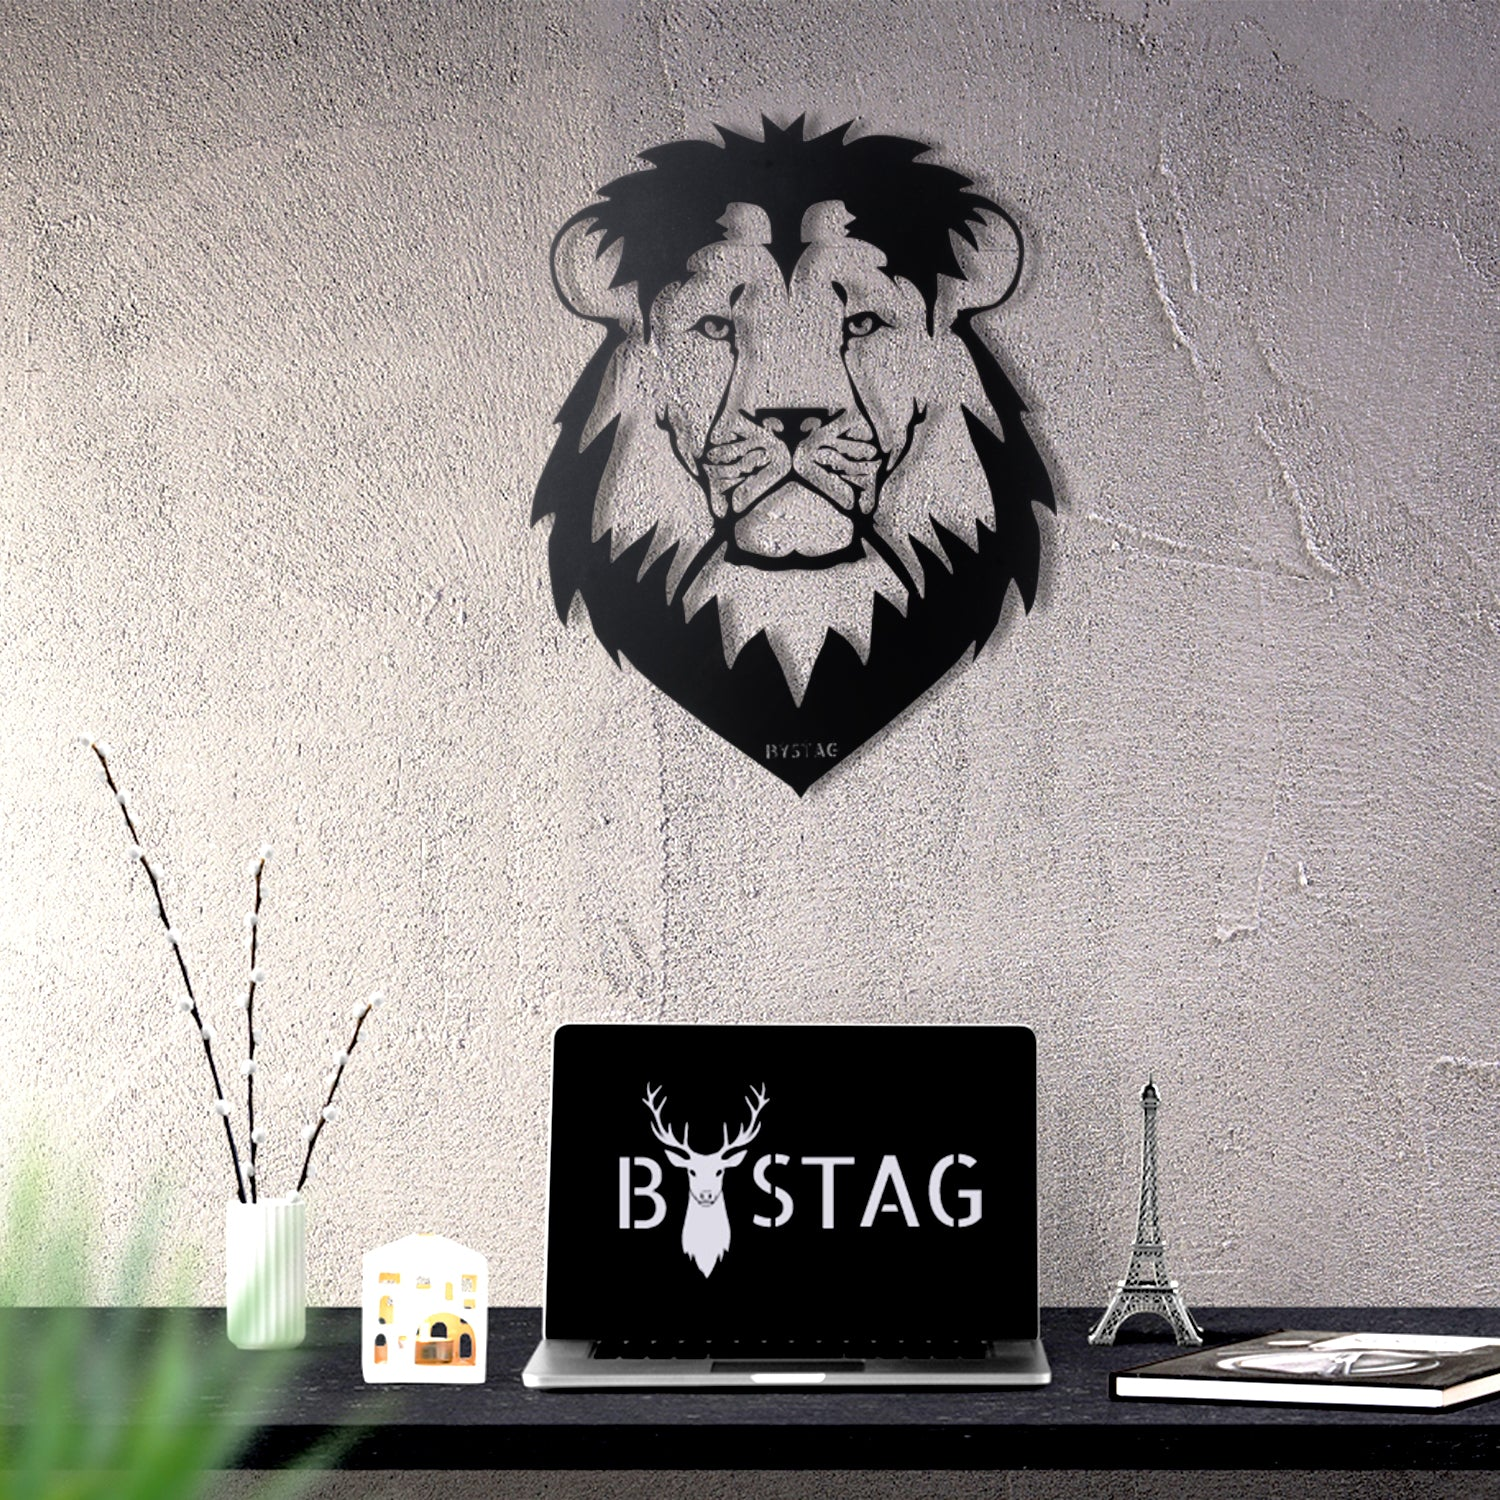 Bystag metal dekoratif duvar aksesuarı aslan- Bystag metal wall art-wall art-wall decor-metal wall decor-lion